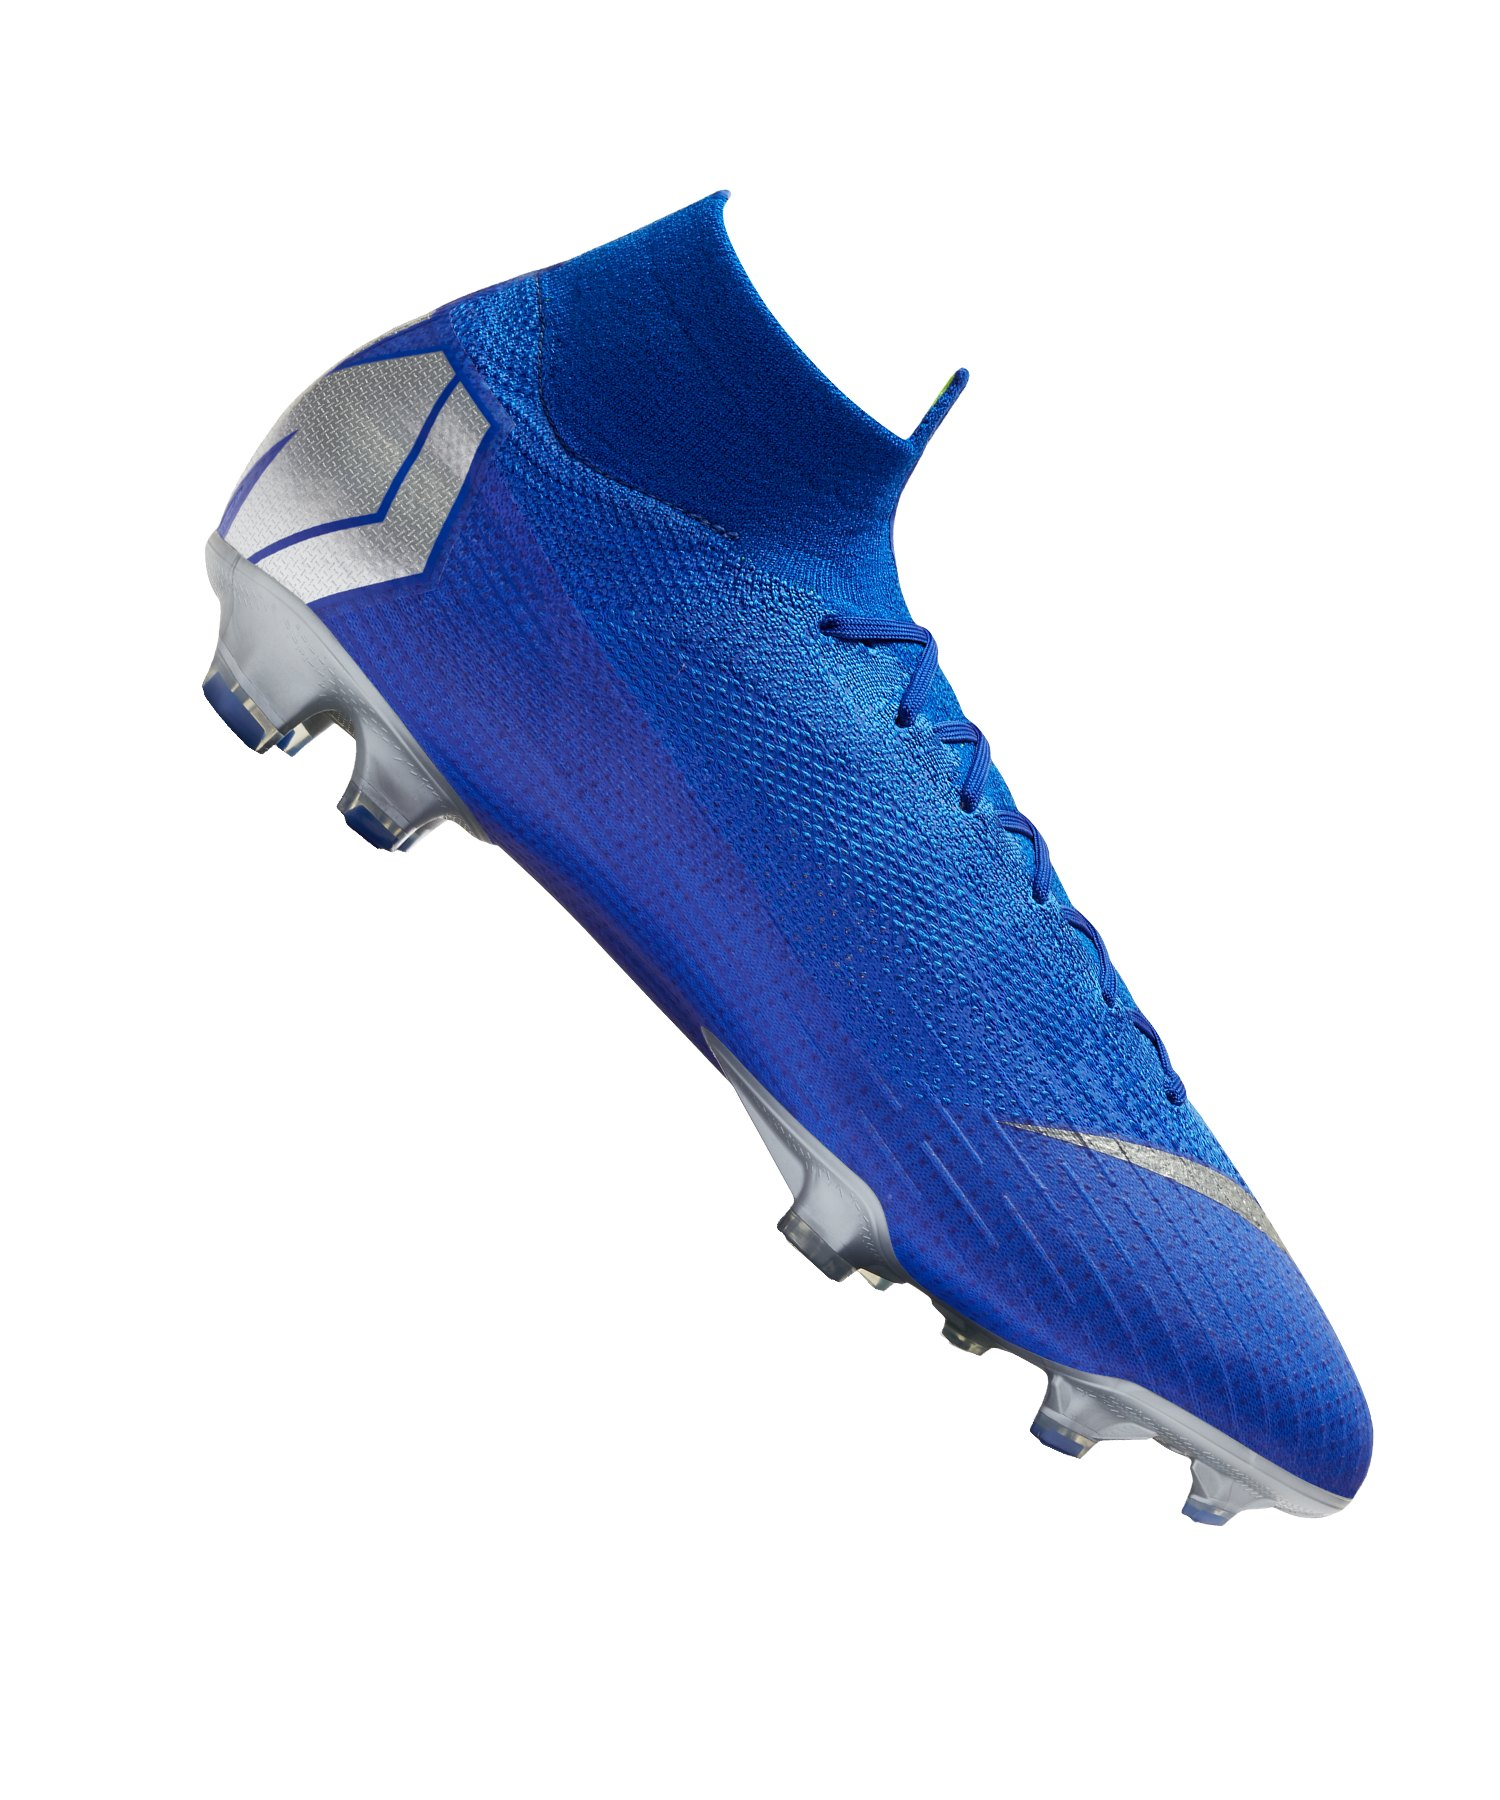 innovative design 8066c c4997 Nike Mercurial Superfly VI Elite FG Blau F400 - blau